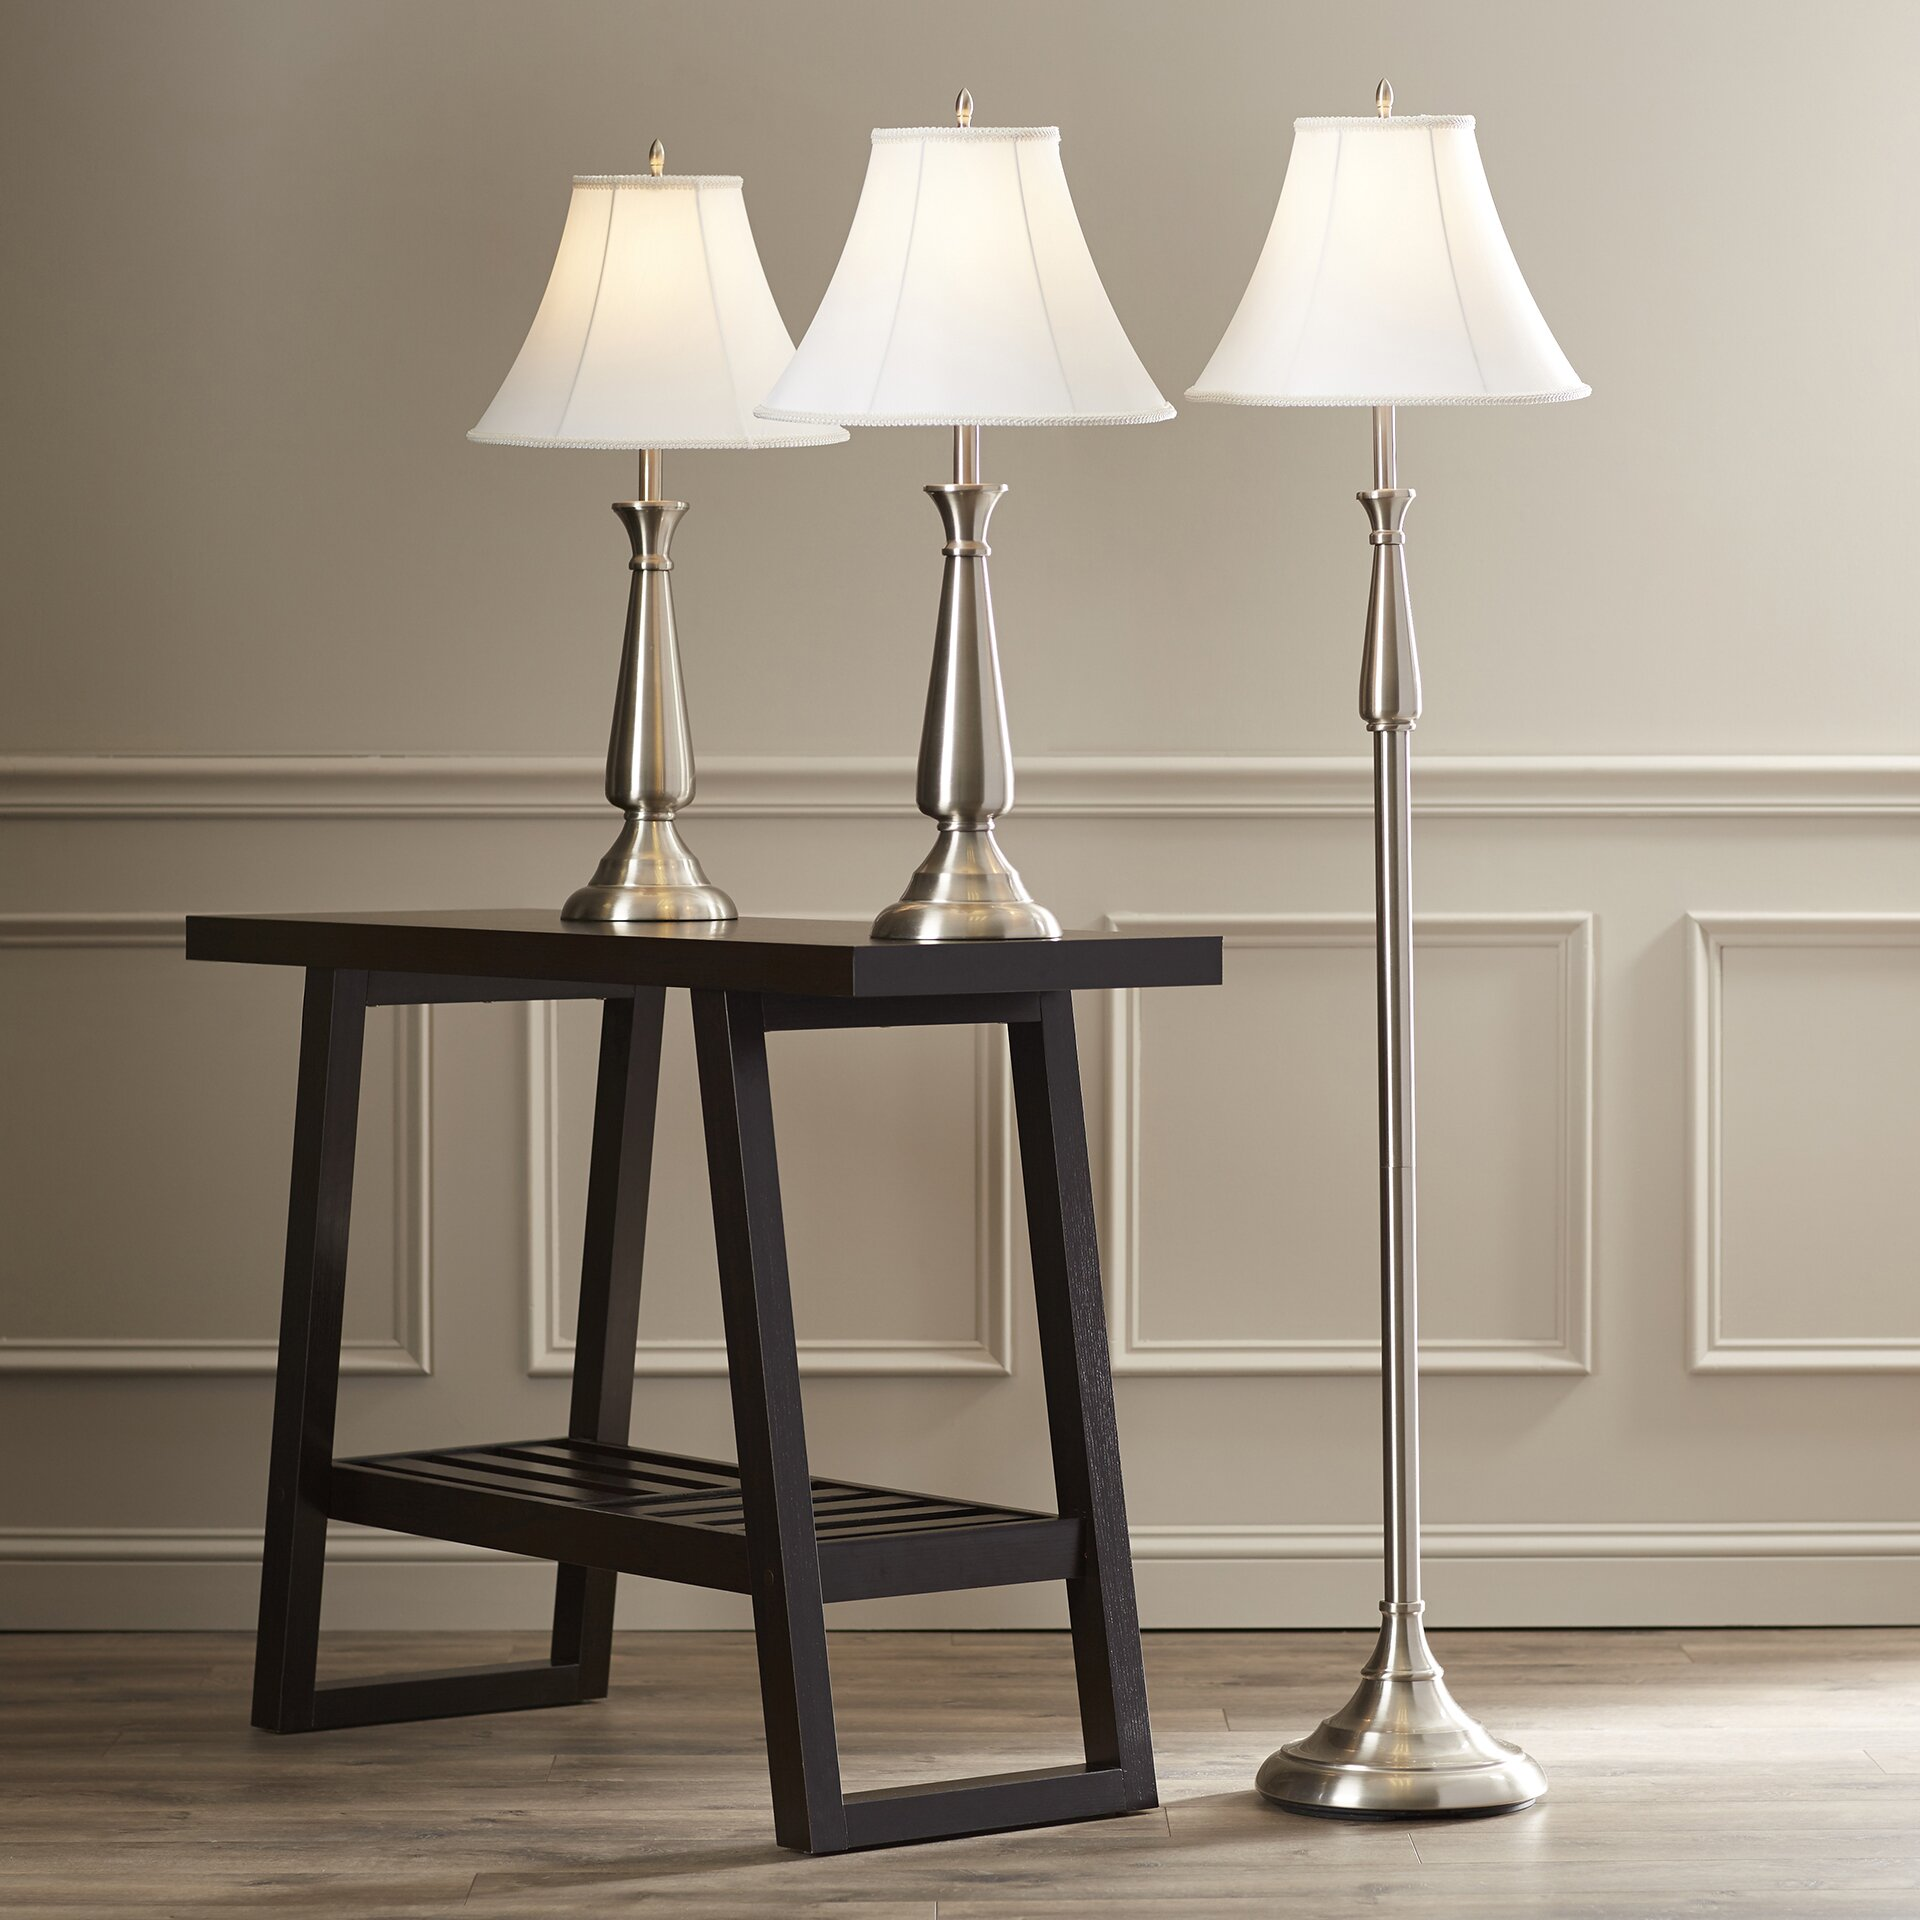 lighting lamps table lamps darby home co sku dbhc1623. Black Bedroom Furniture Sets. Home Design Ideas